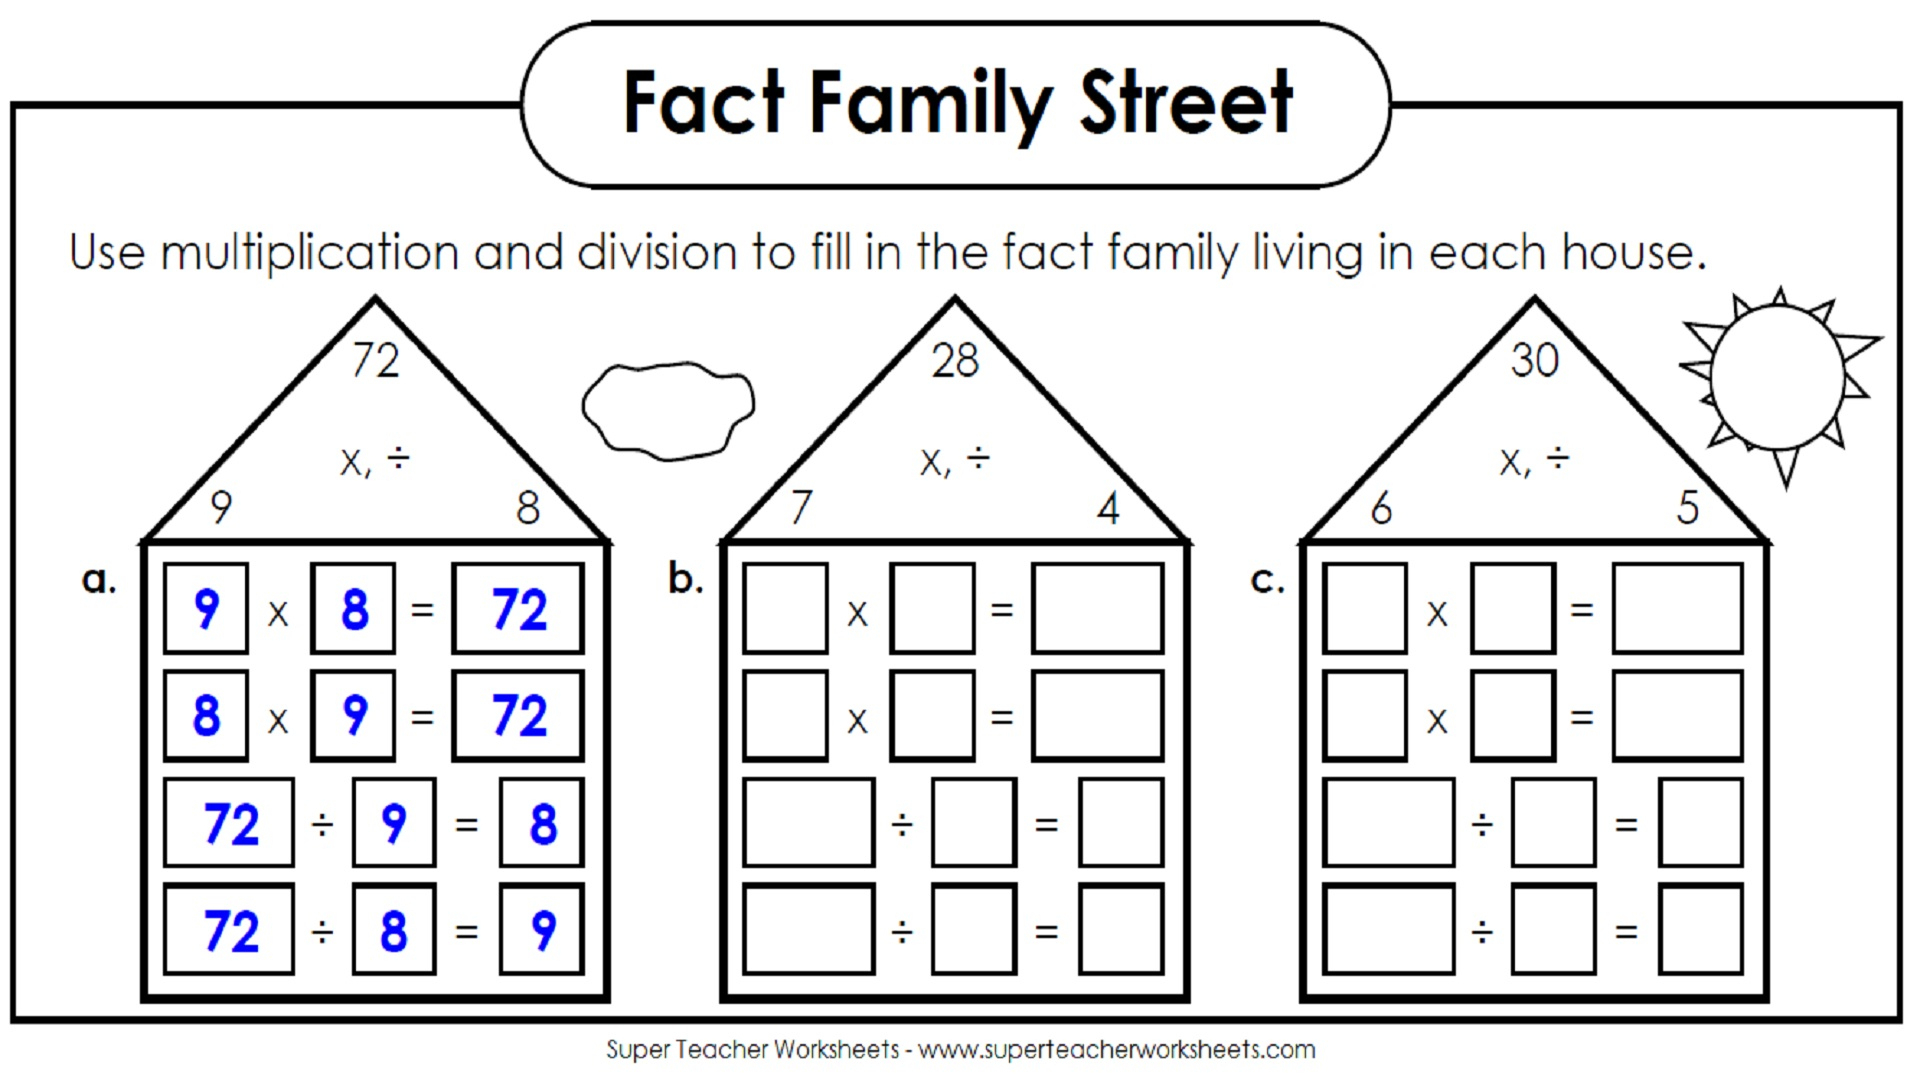 Splashtop Whiteboard Background Graphics | Free Printable Multiplication Division Fact Family Worksheets